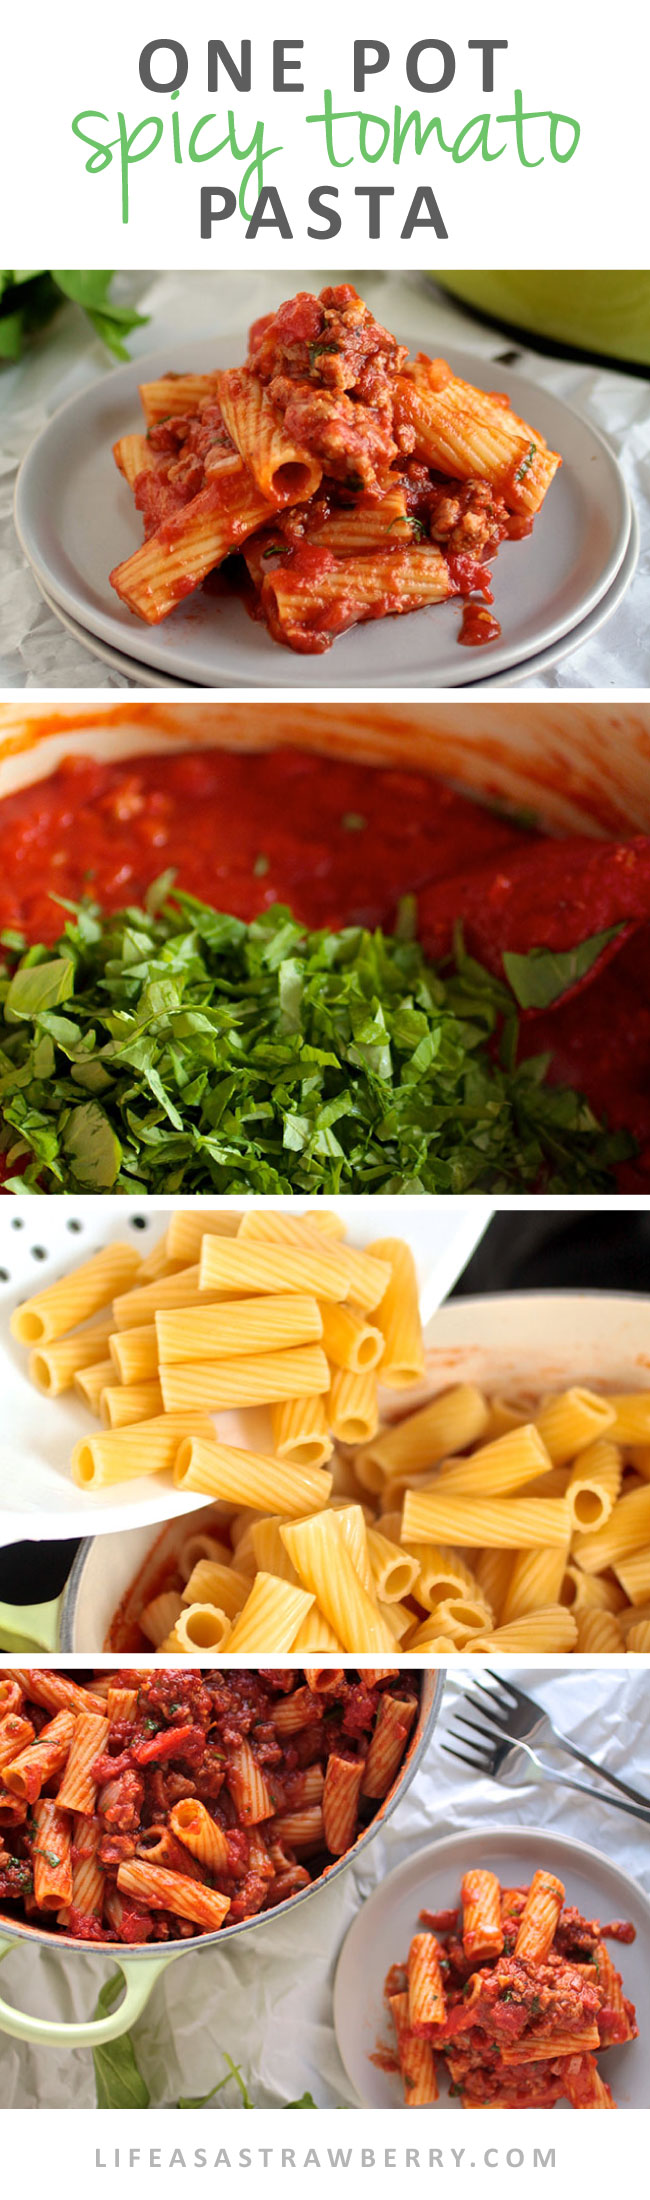 One Pot Spicy Tomato Pasta | This quick and easy pasta recipe is perfect for busy weeknights! Delicious rigatoni pasta, a quick spicy Italian Sausage and tomato sauce, and some fresh arugula give this pasta a fun twist on the classic tomato sauce.